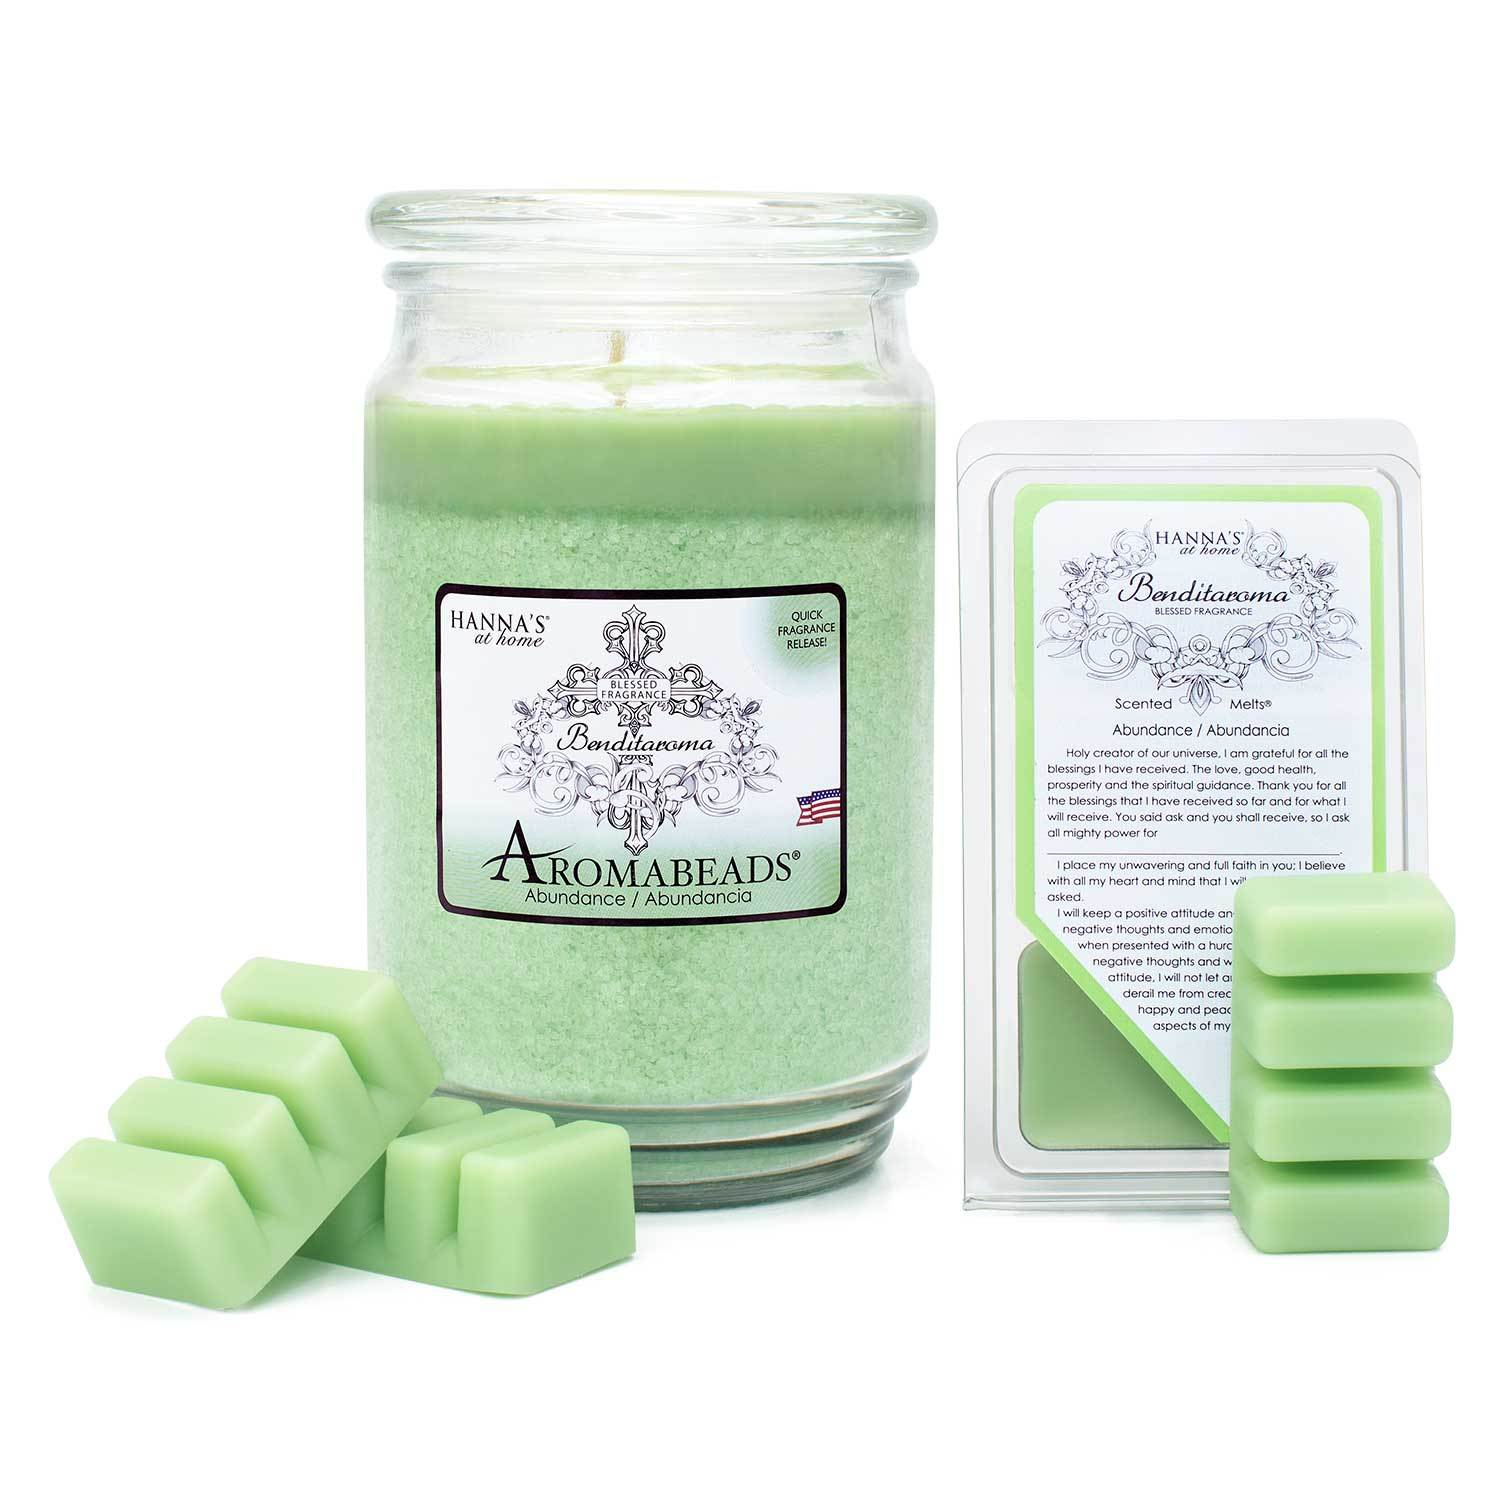 Aromabeads Abundance Scented Candle